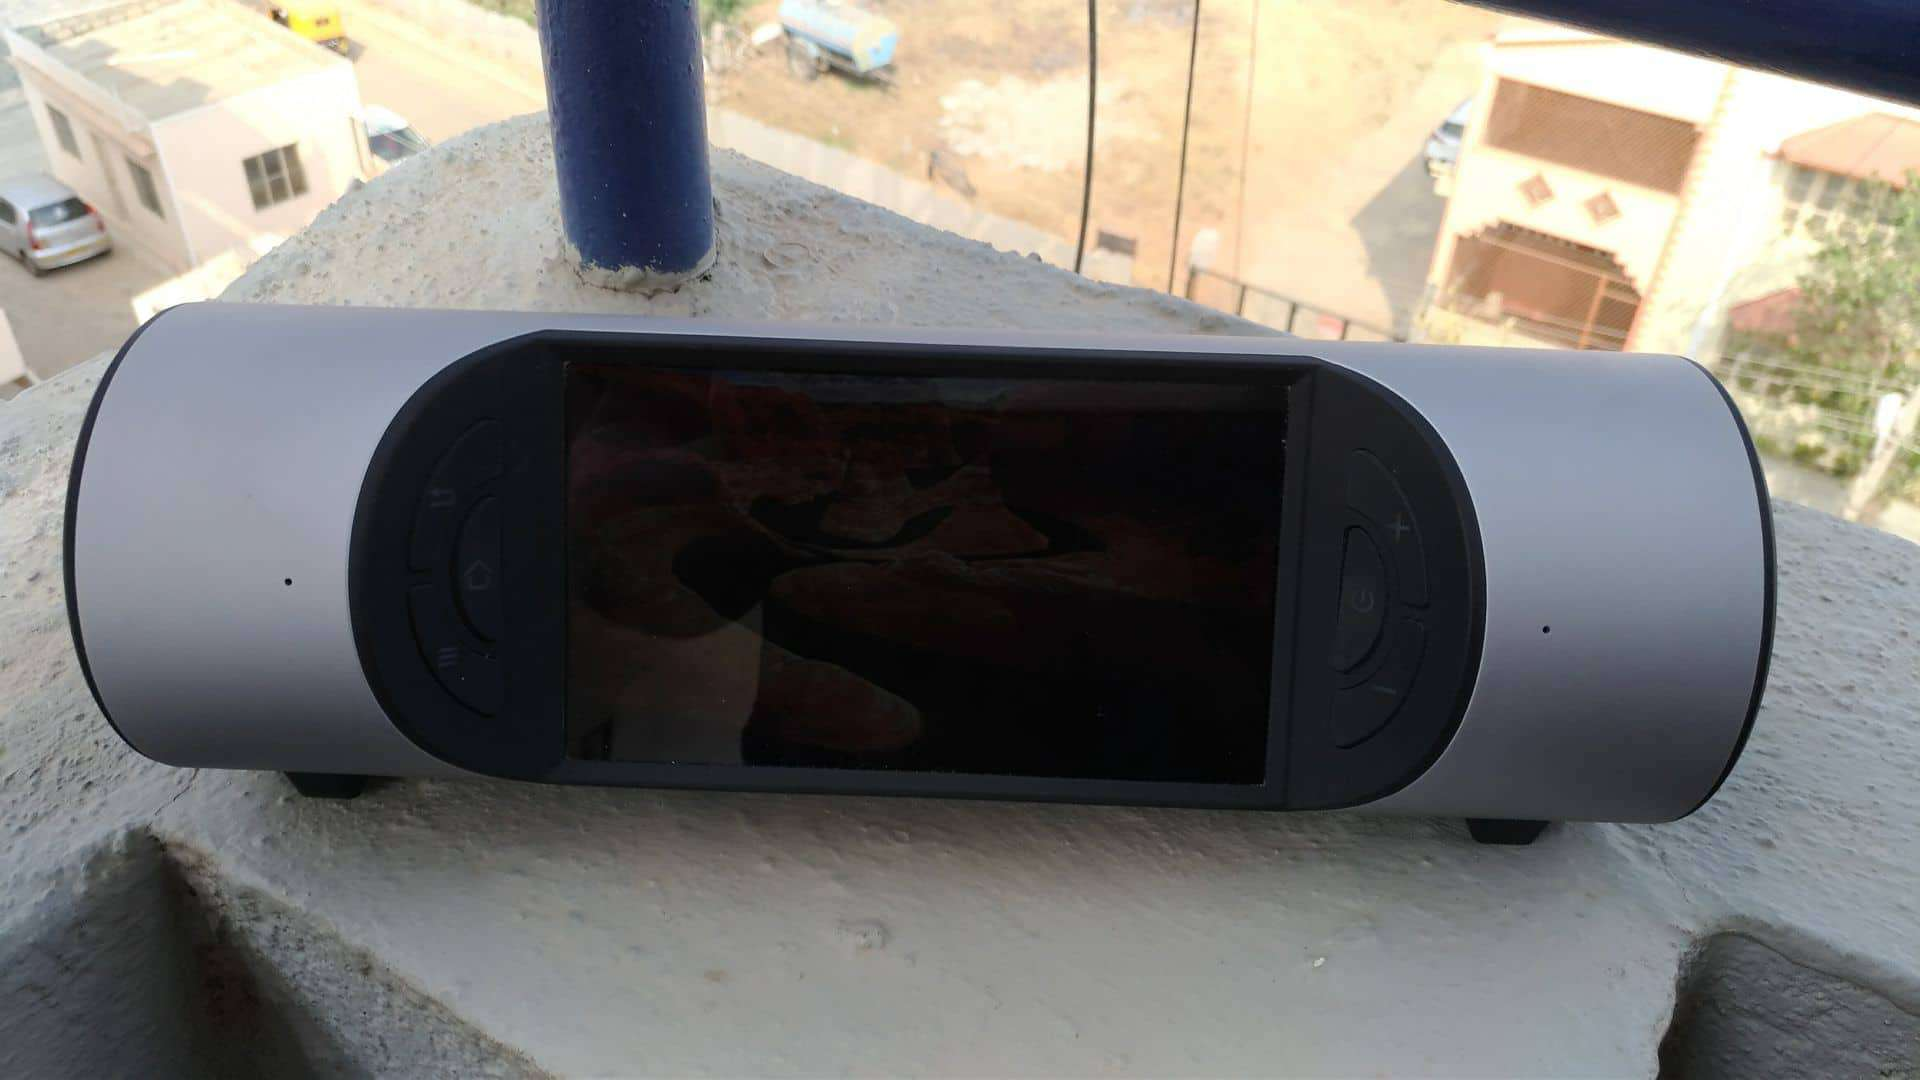 ZBINNO Miro Review - A Portable Smart Media Player That can Bring Colors to your Travel Life! - 2